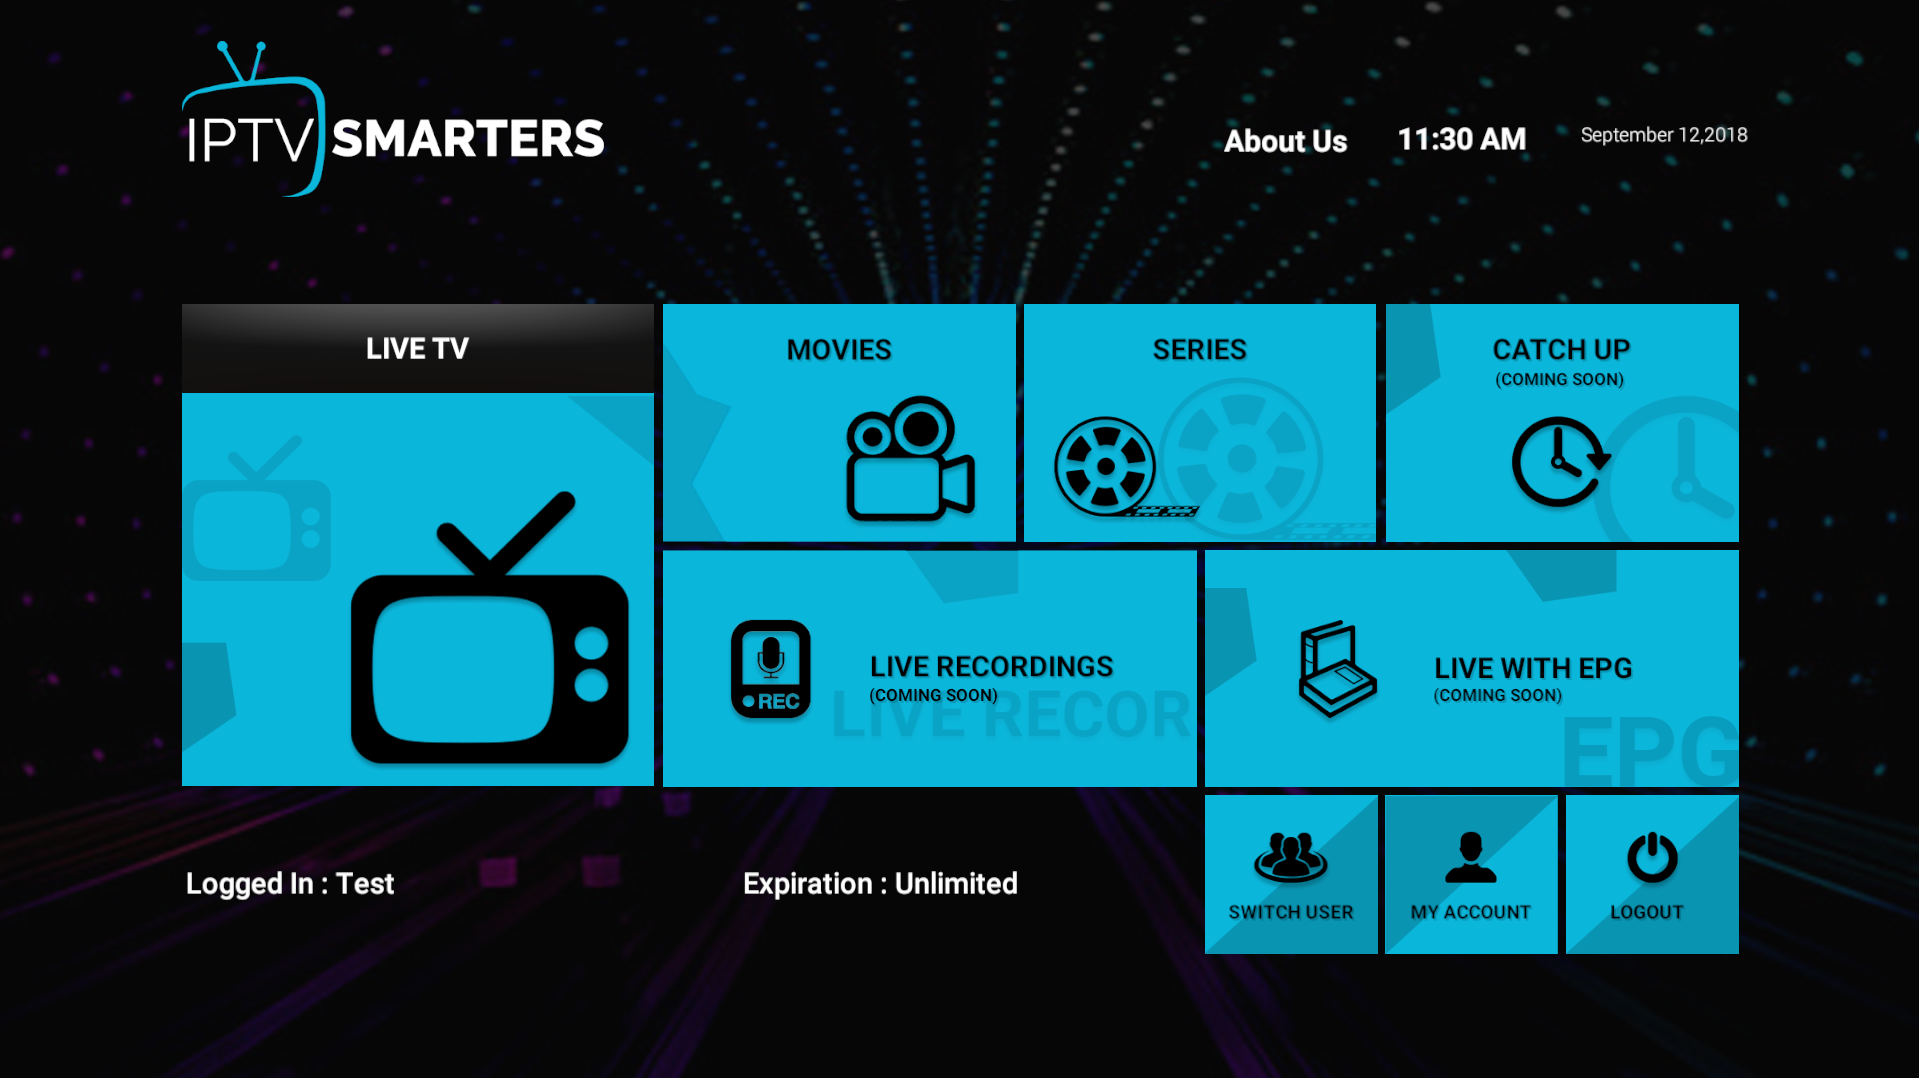 IPTV App for Windows | IPTV Smarters Windows App | WHMCS Smarters